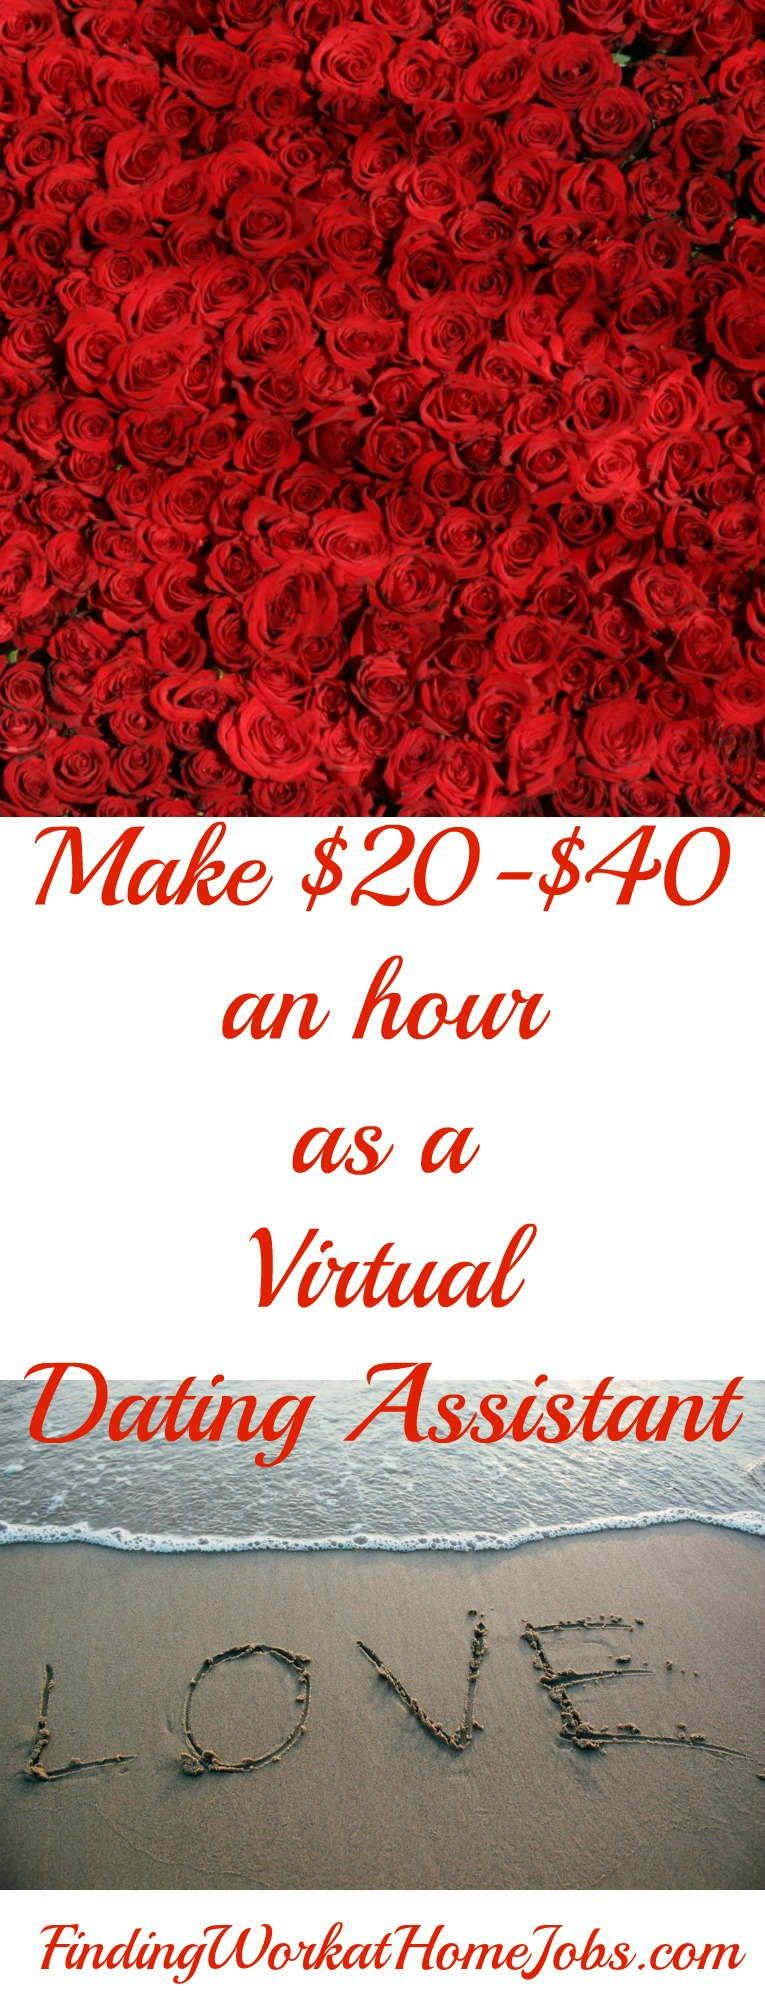 Make $20-$40 an hour as a Virtual Dating Assistant